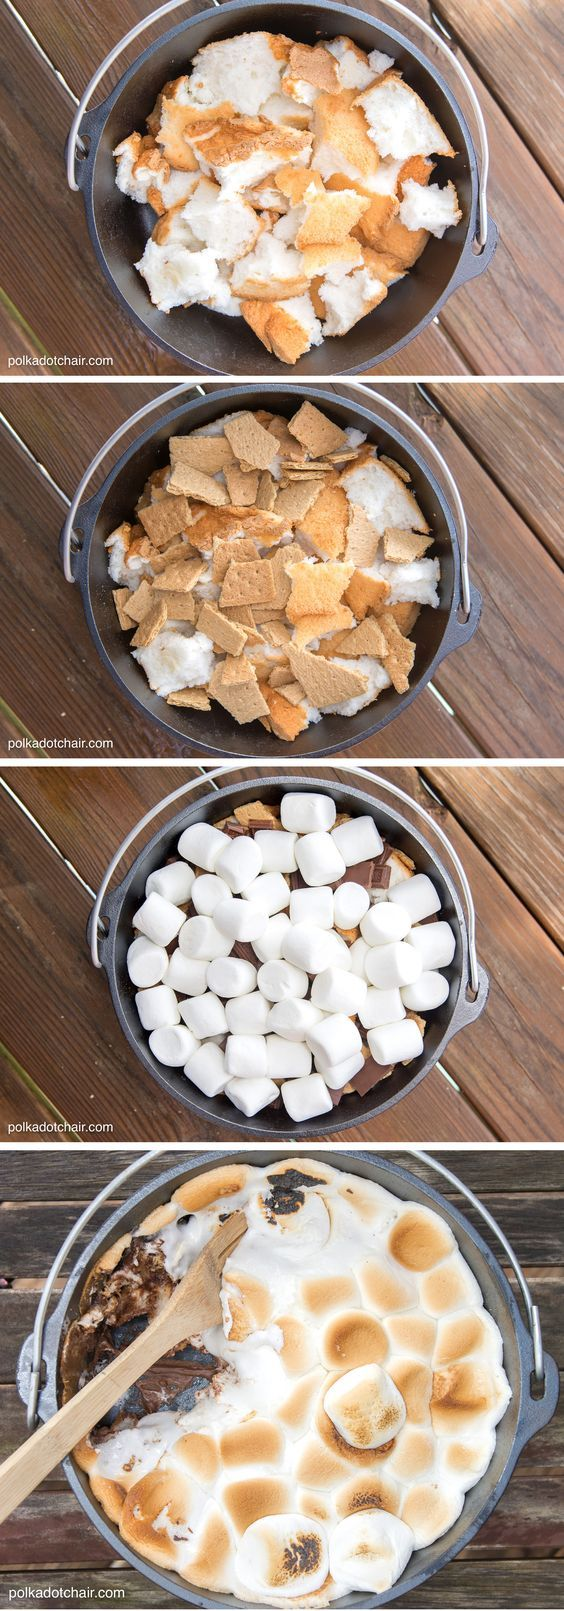 Super easy recipe for S'mores cake! Hot coals 8-10 on bottom, 12-15 on top